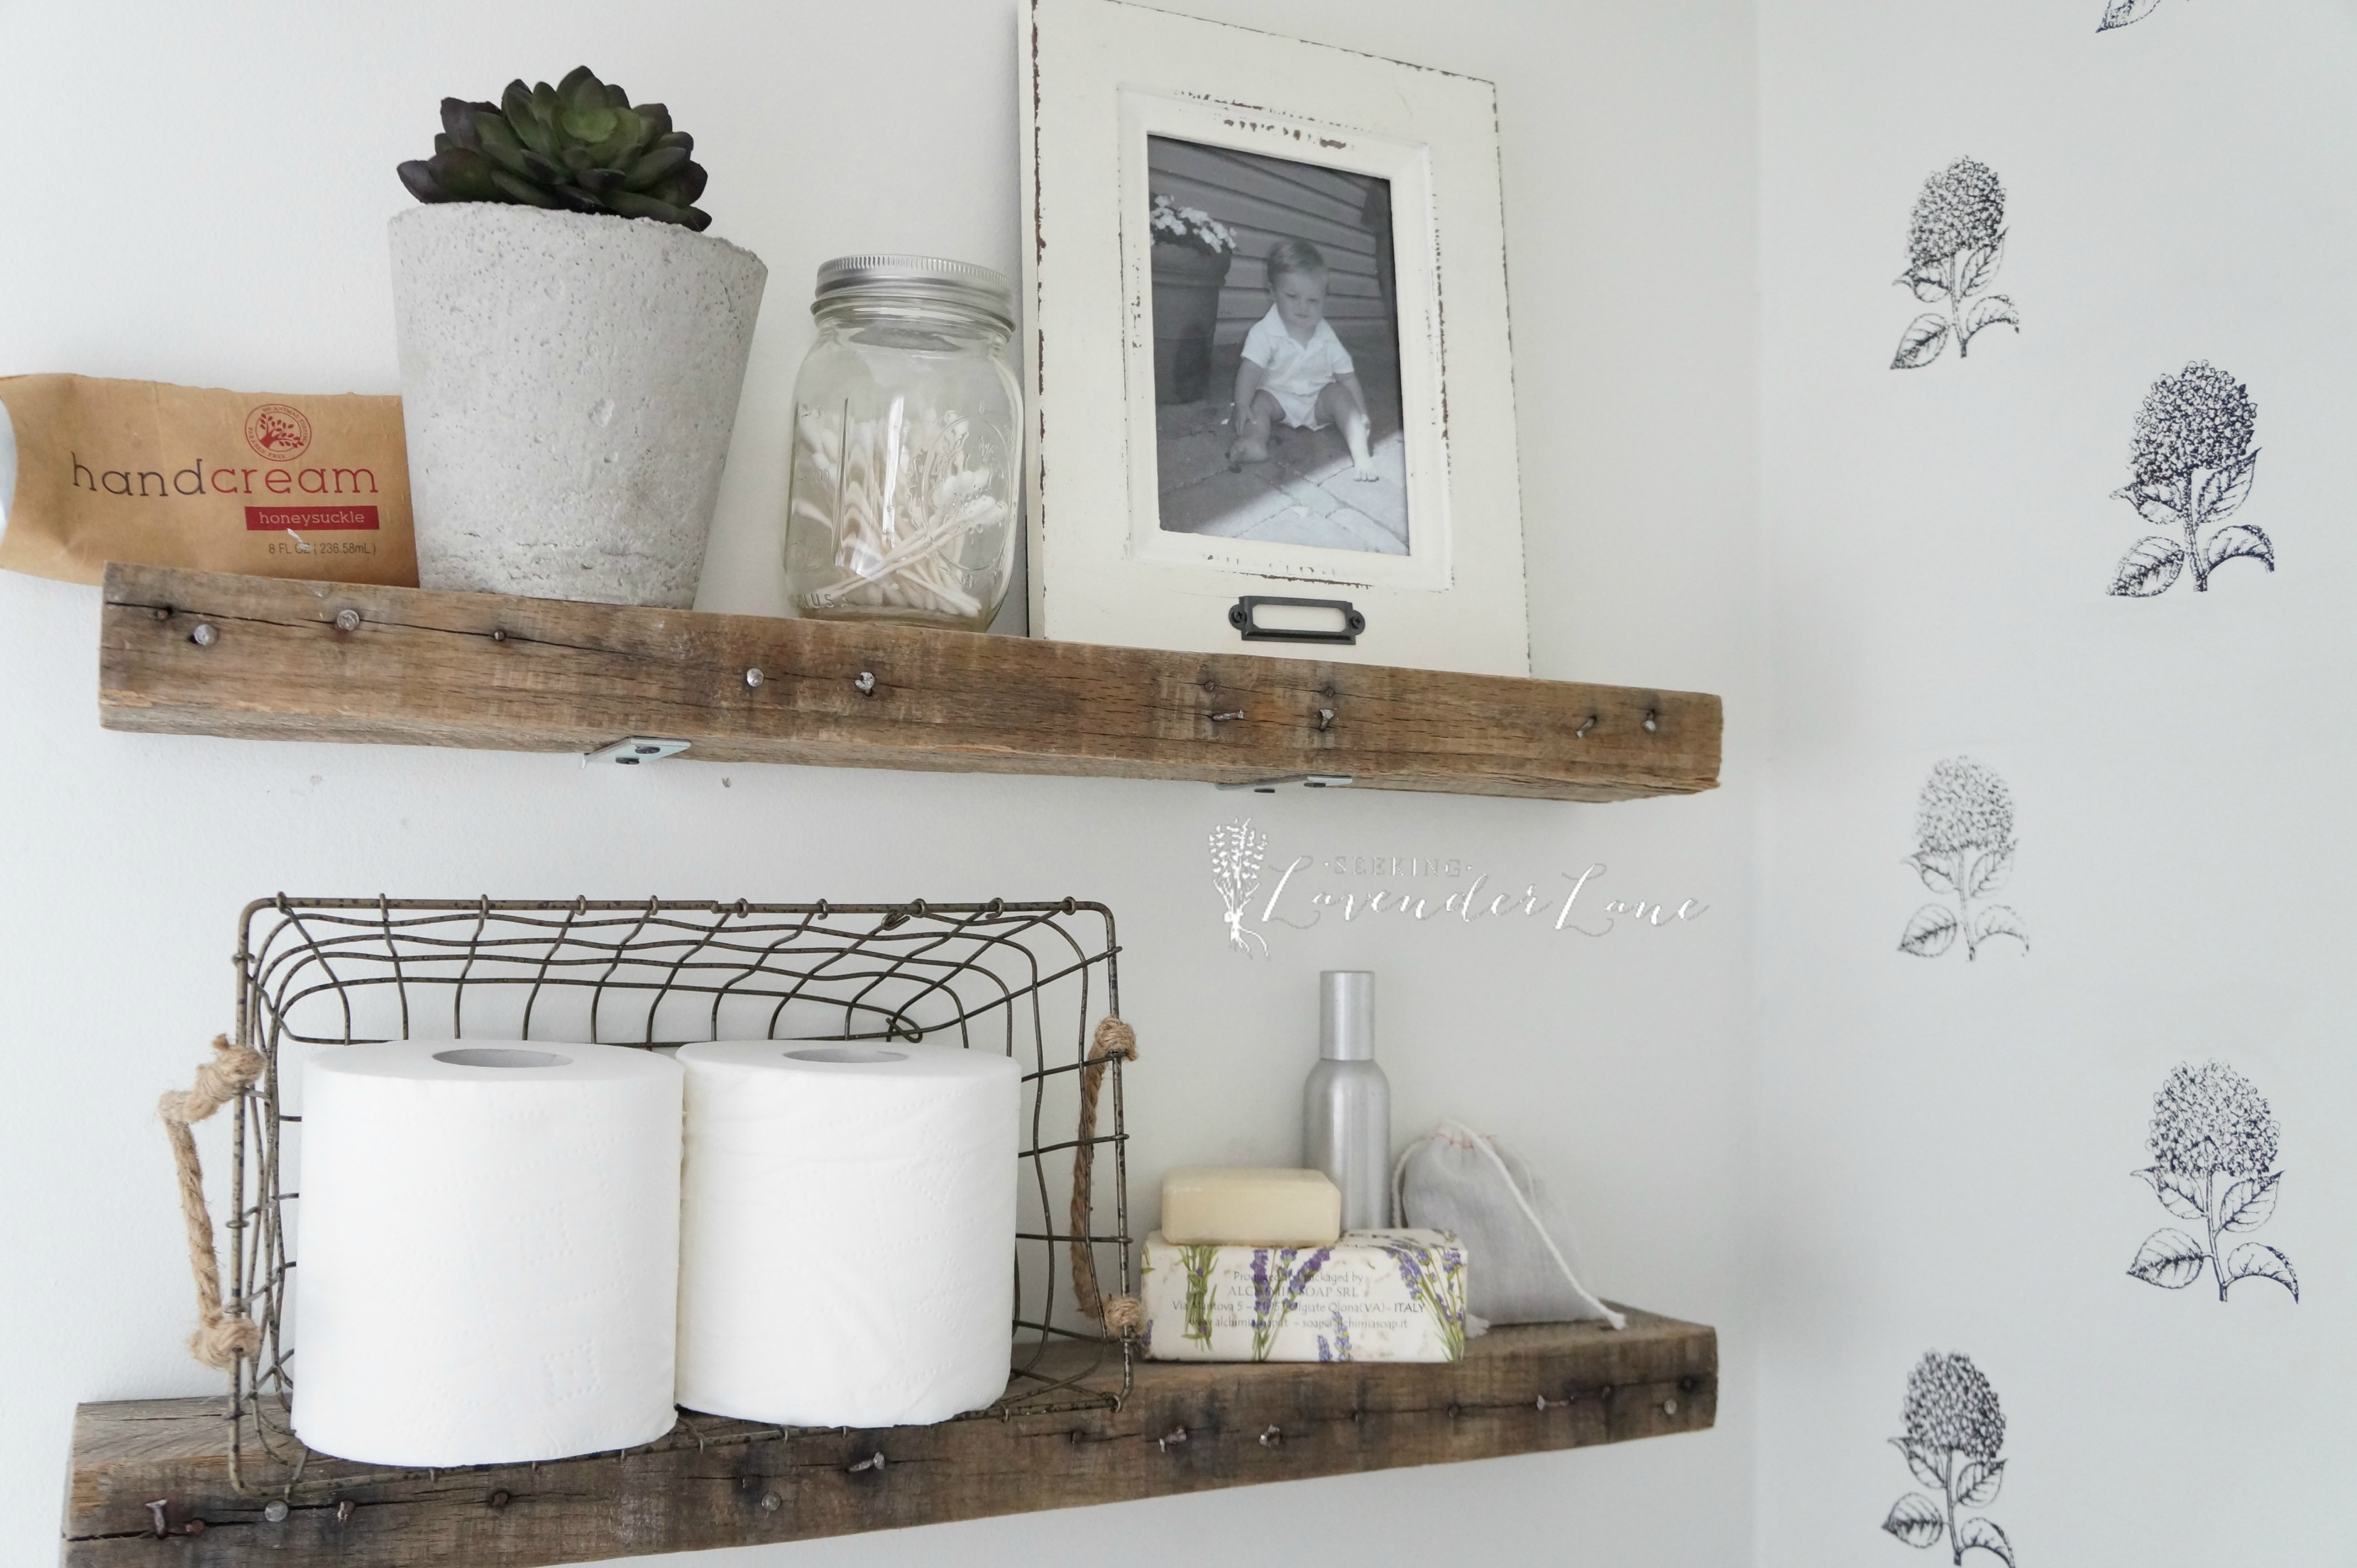 DIY Rustic Bathroom Shelves - Seeking Lavendar Lane